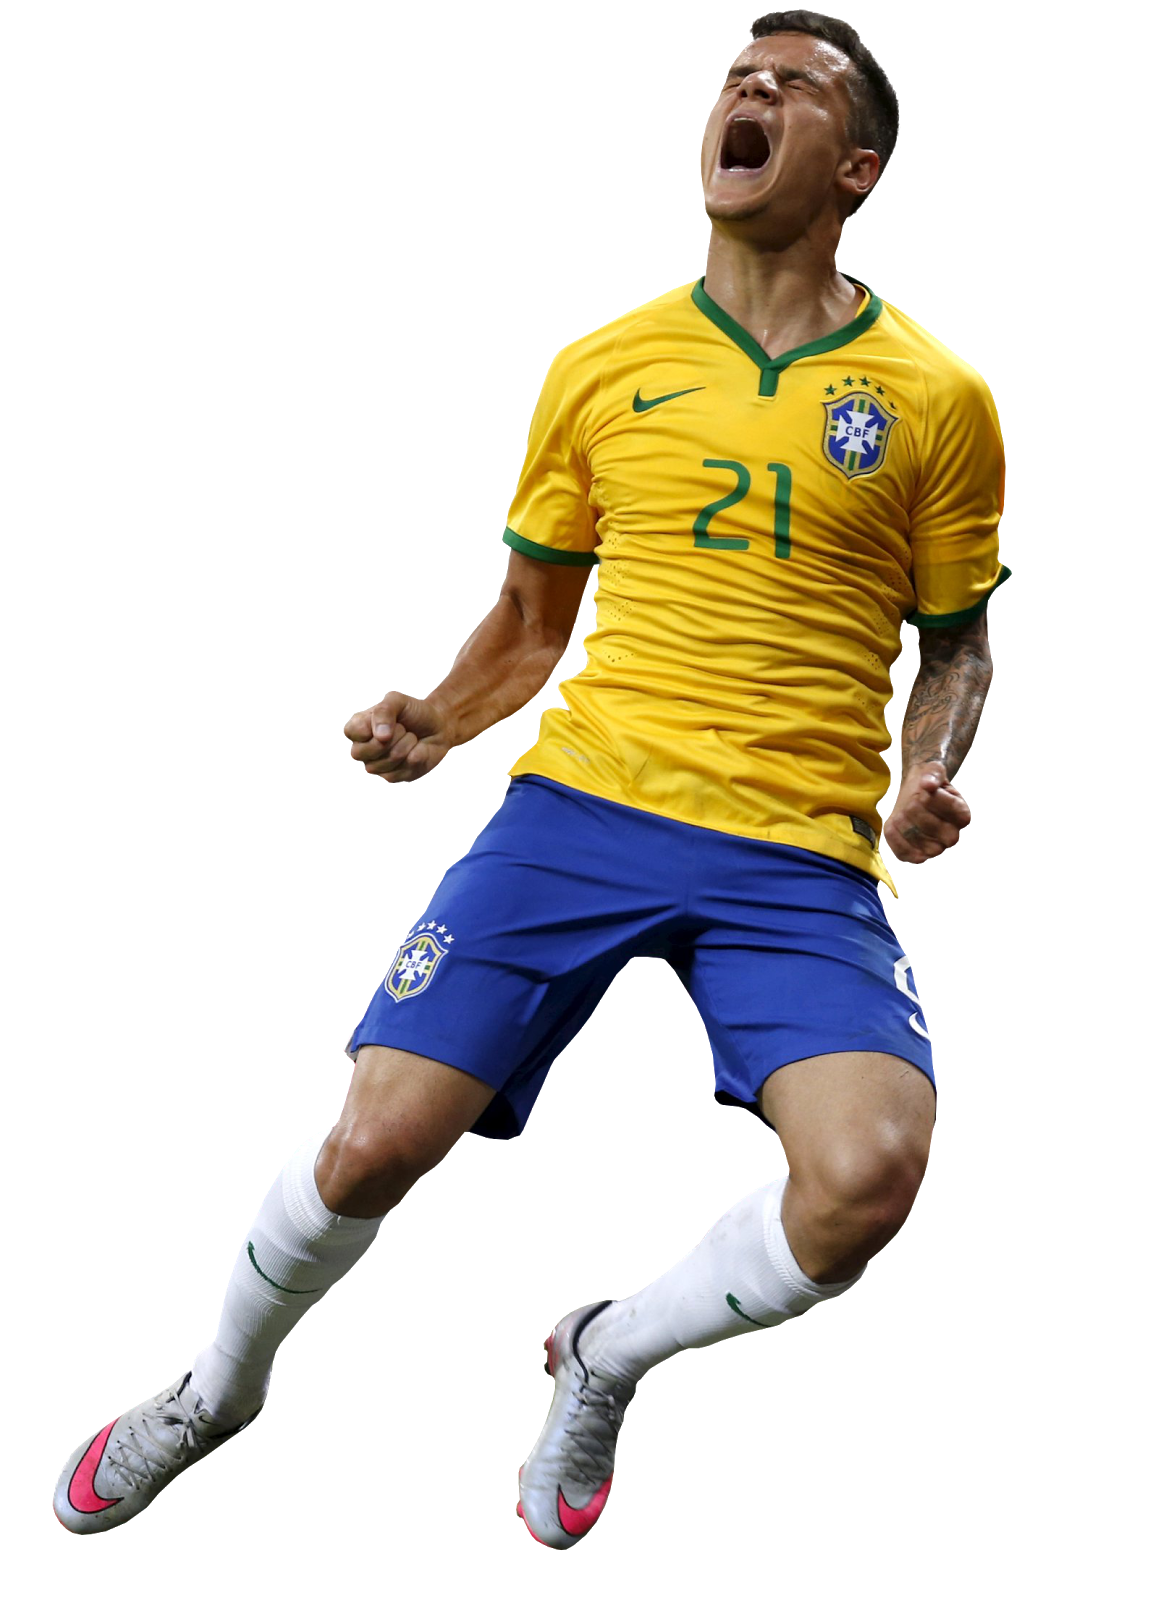 philippe coutinho football render - 13940